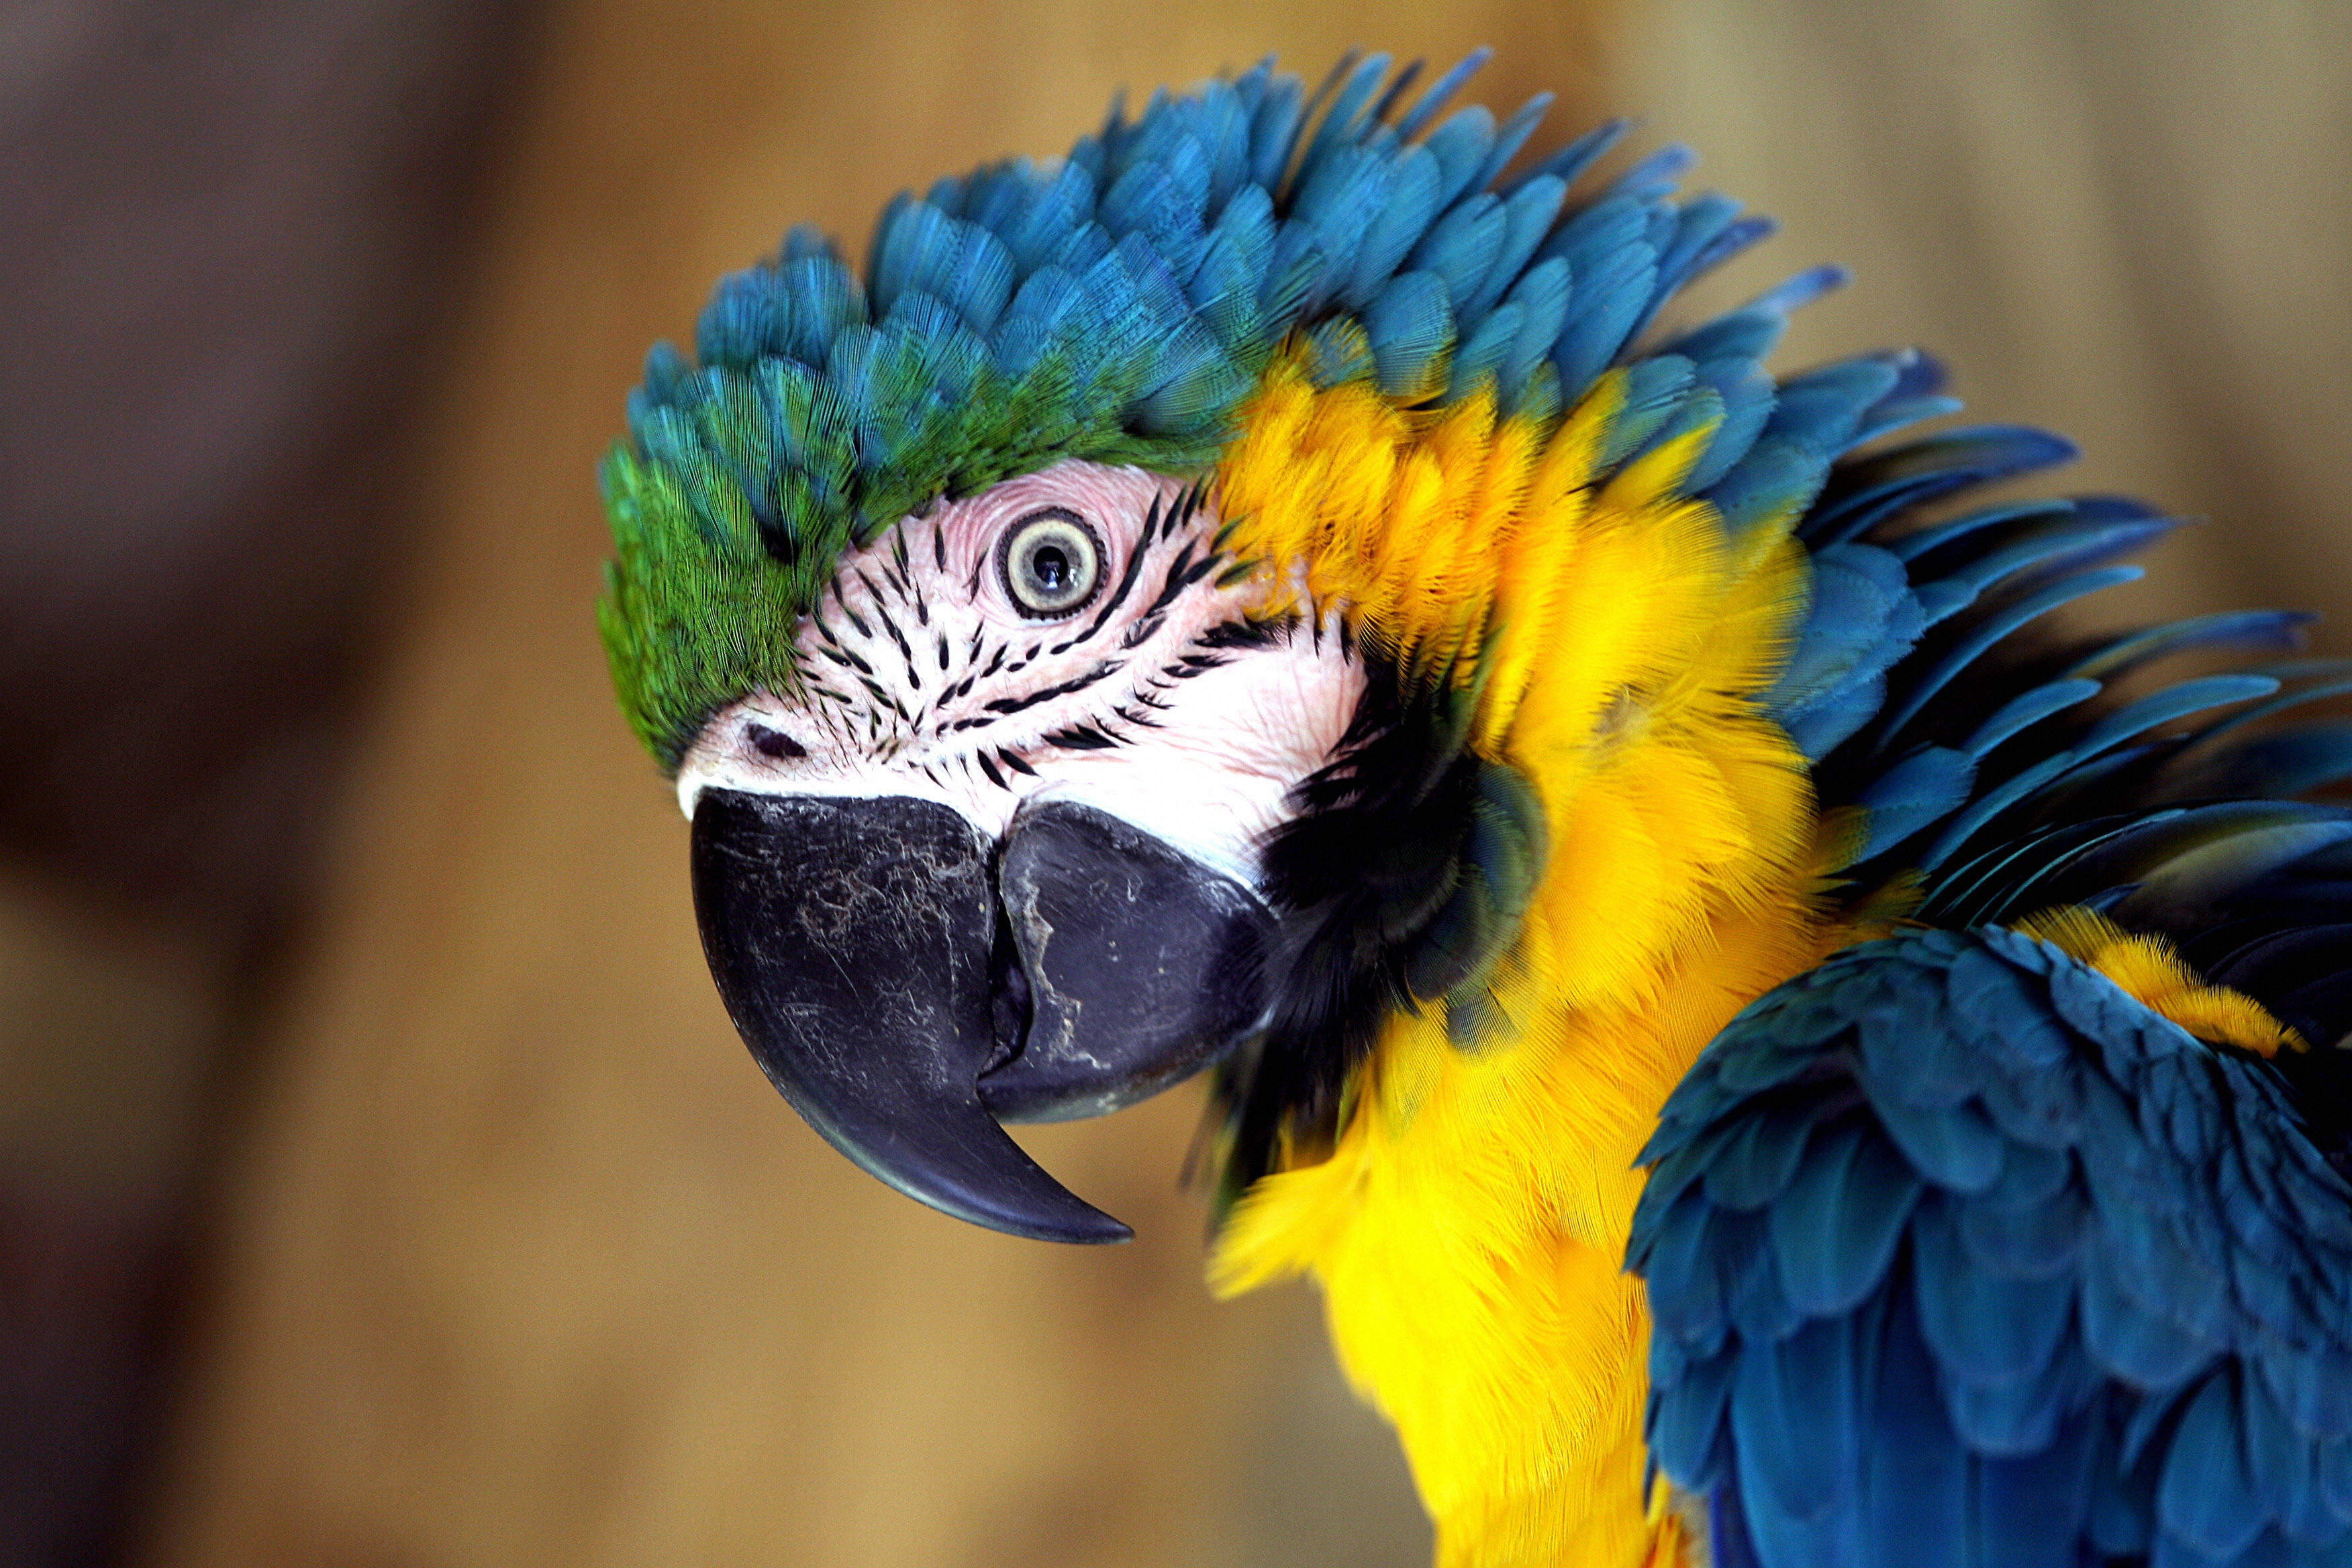 Foul-mouthed parrots removed from wildlife park for swearing at visitors